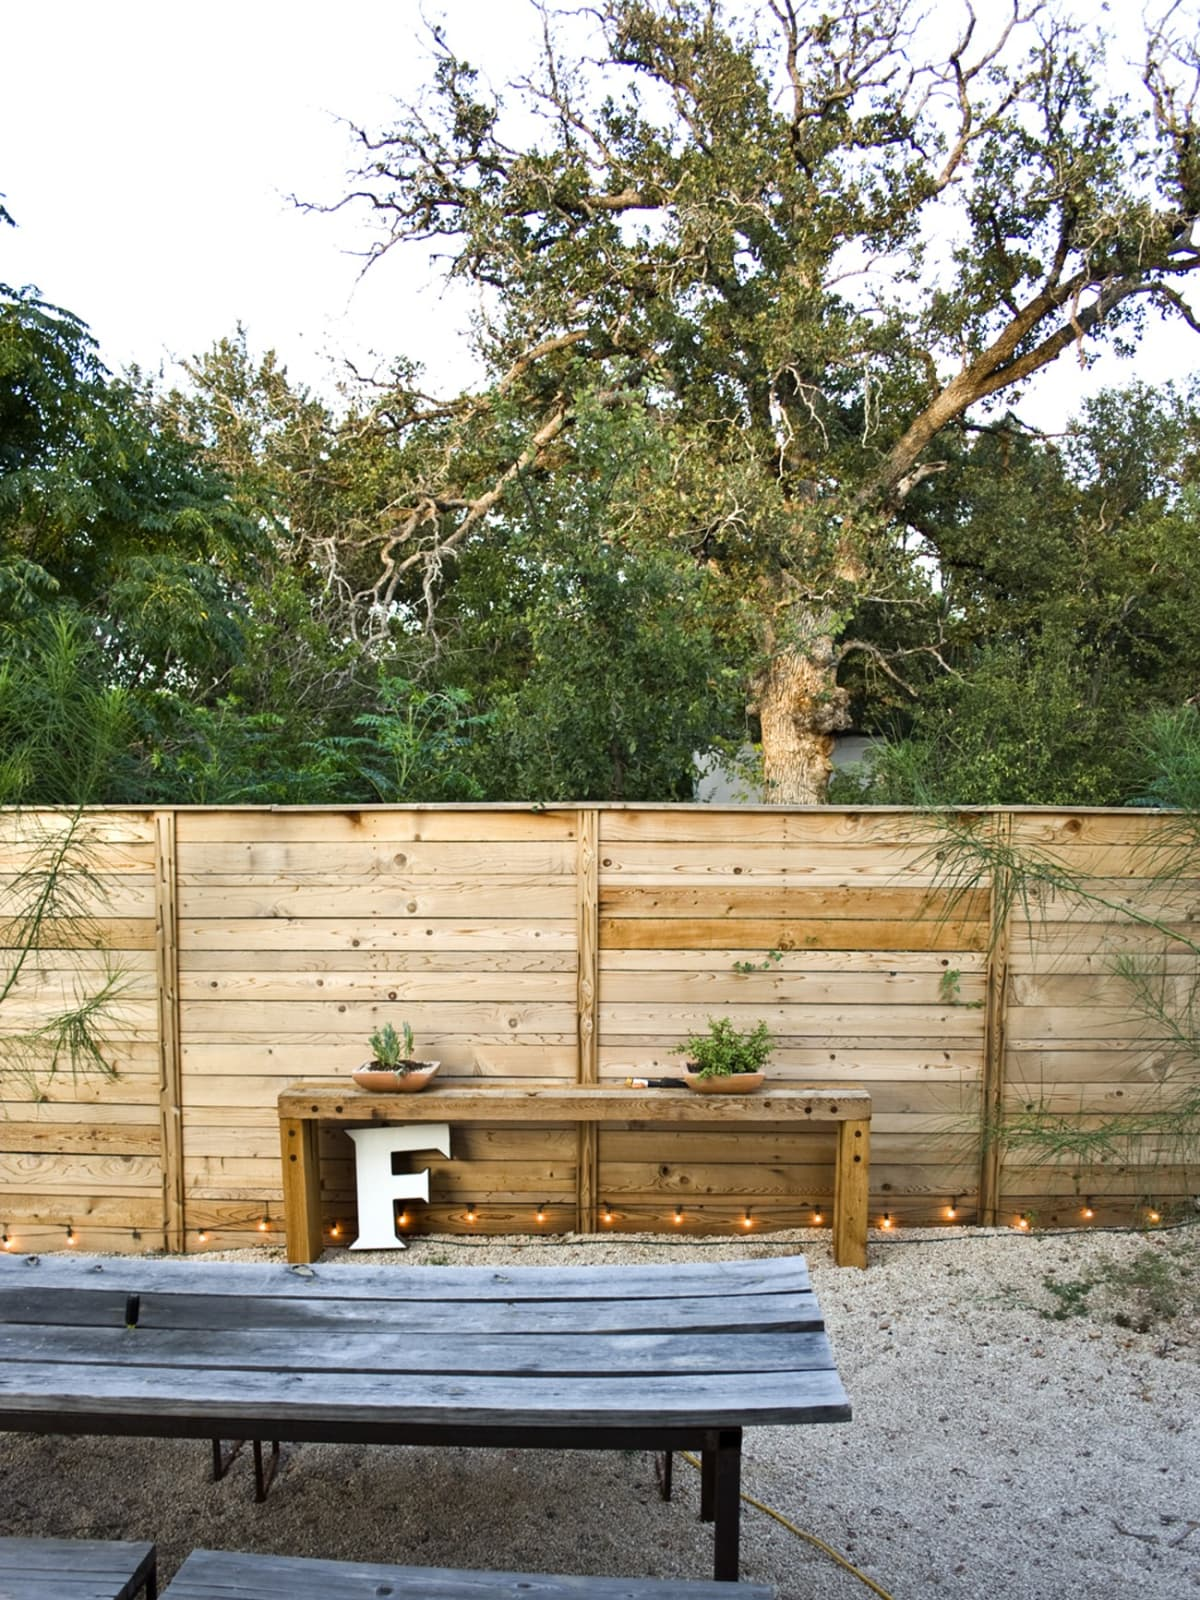 Austin Backyard Moontower Design Build Image 1